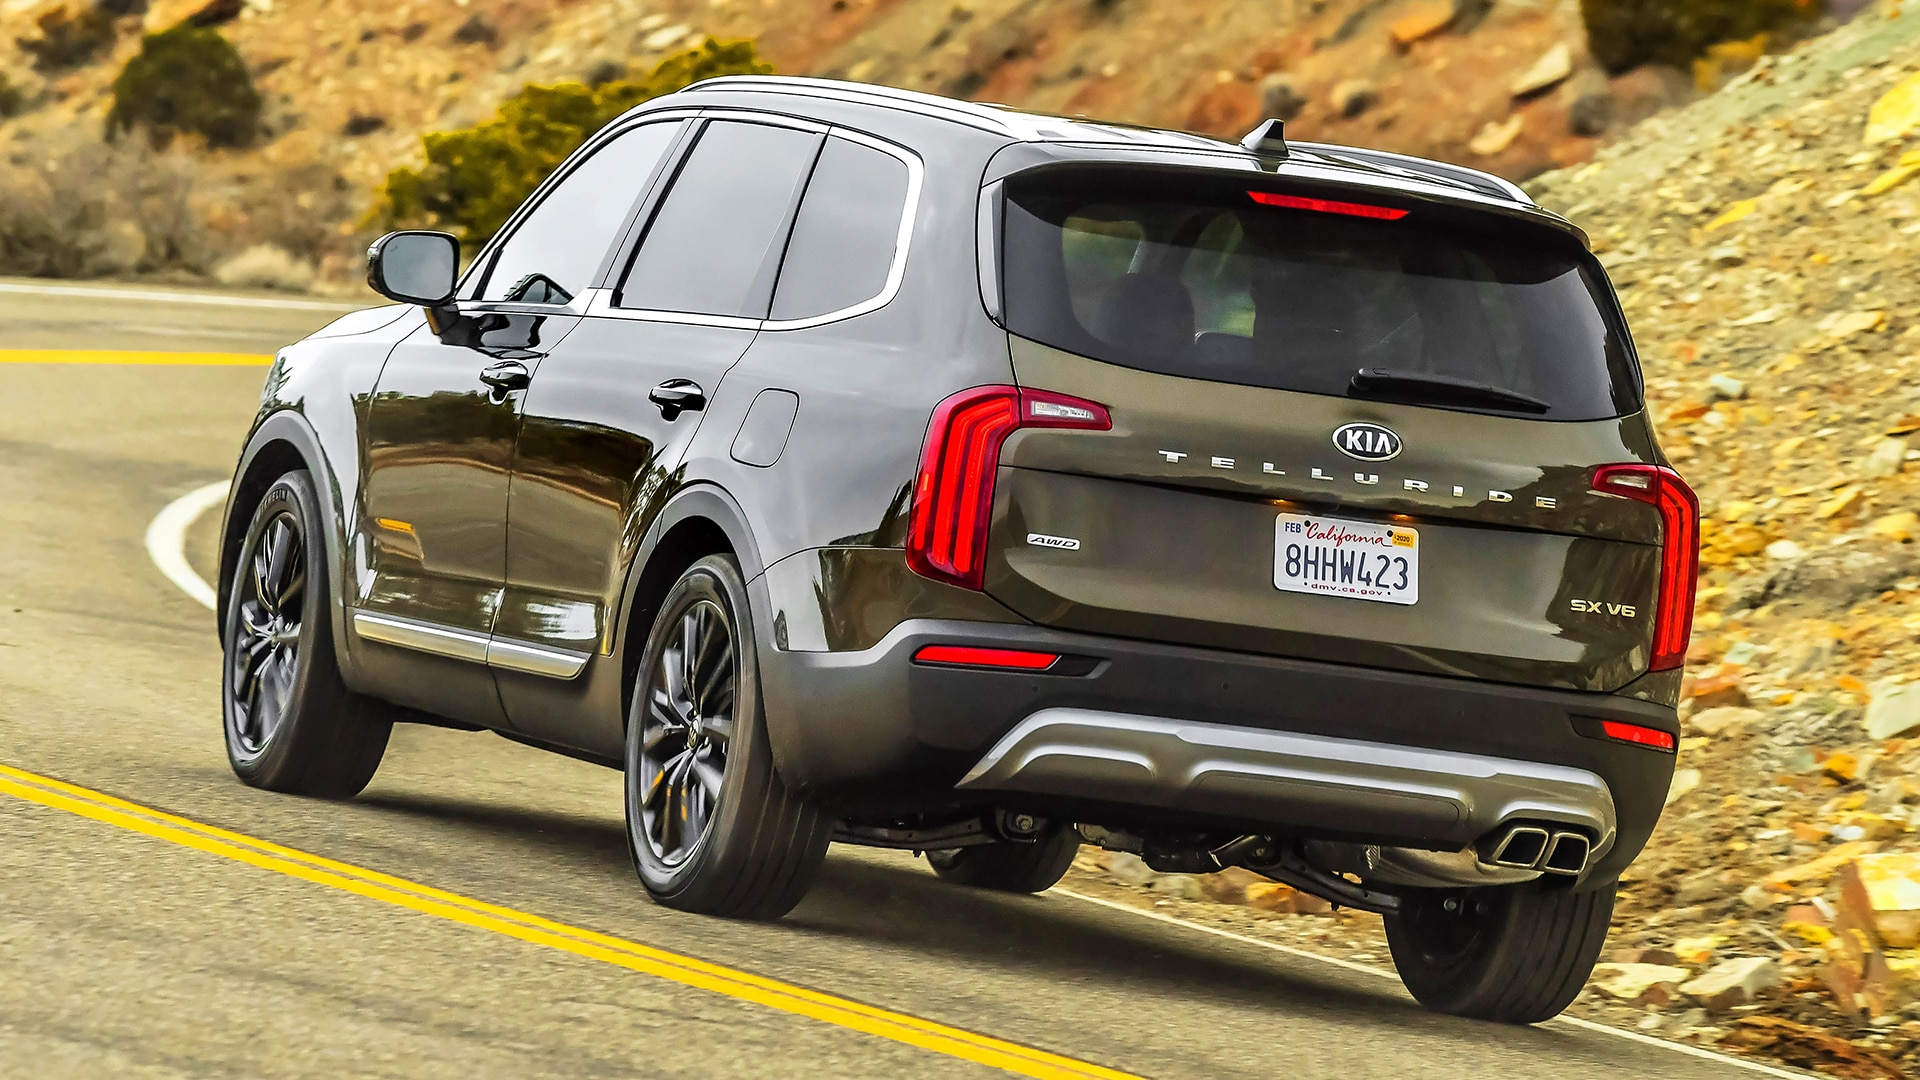 first drive review: the 2020 kia telluride is classy and